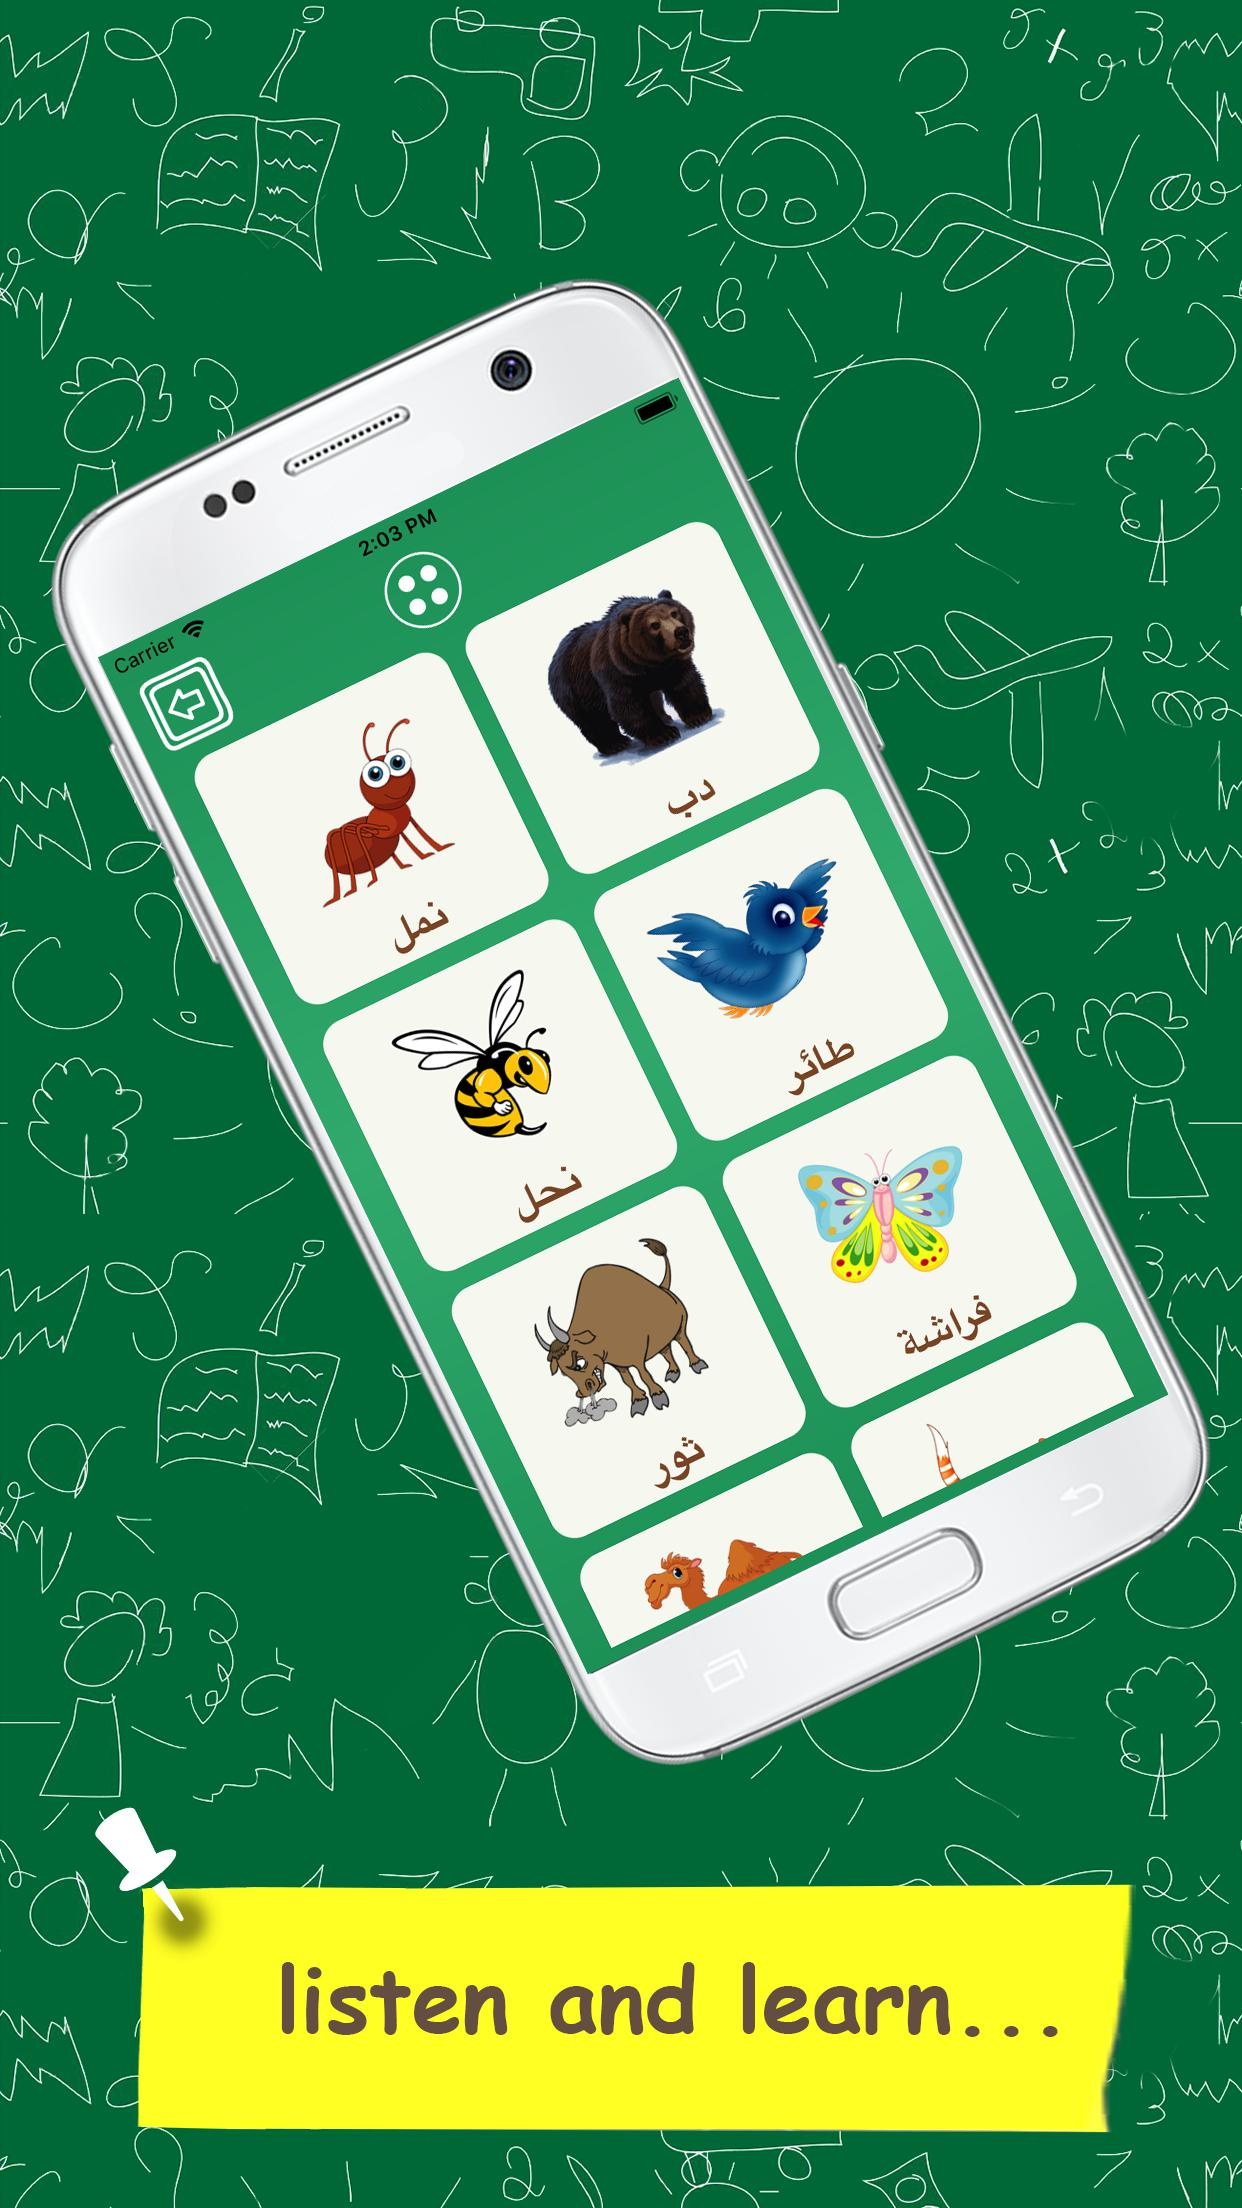 Learn Arabic Vocabulary - Kids 1.0.4 Screenshot 3